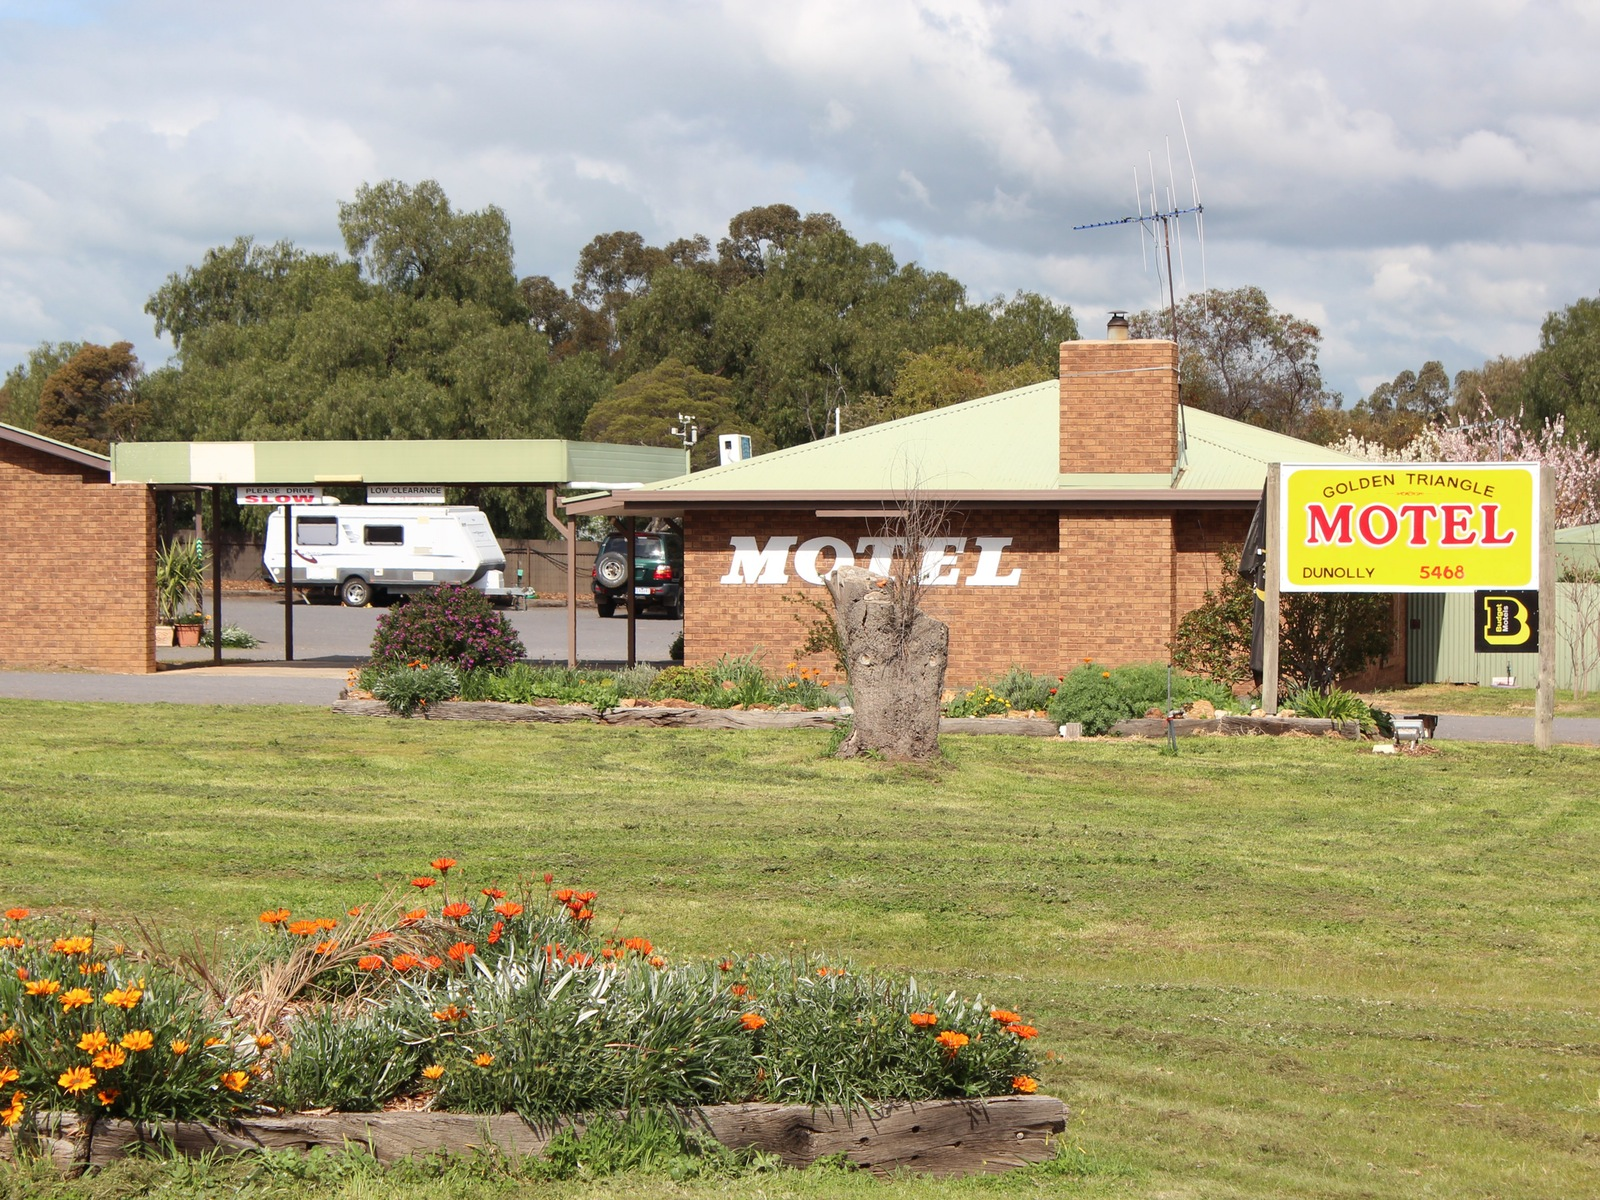 Dunolly Golden Triangle Motel external